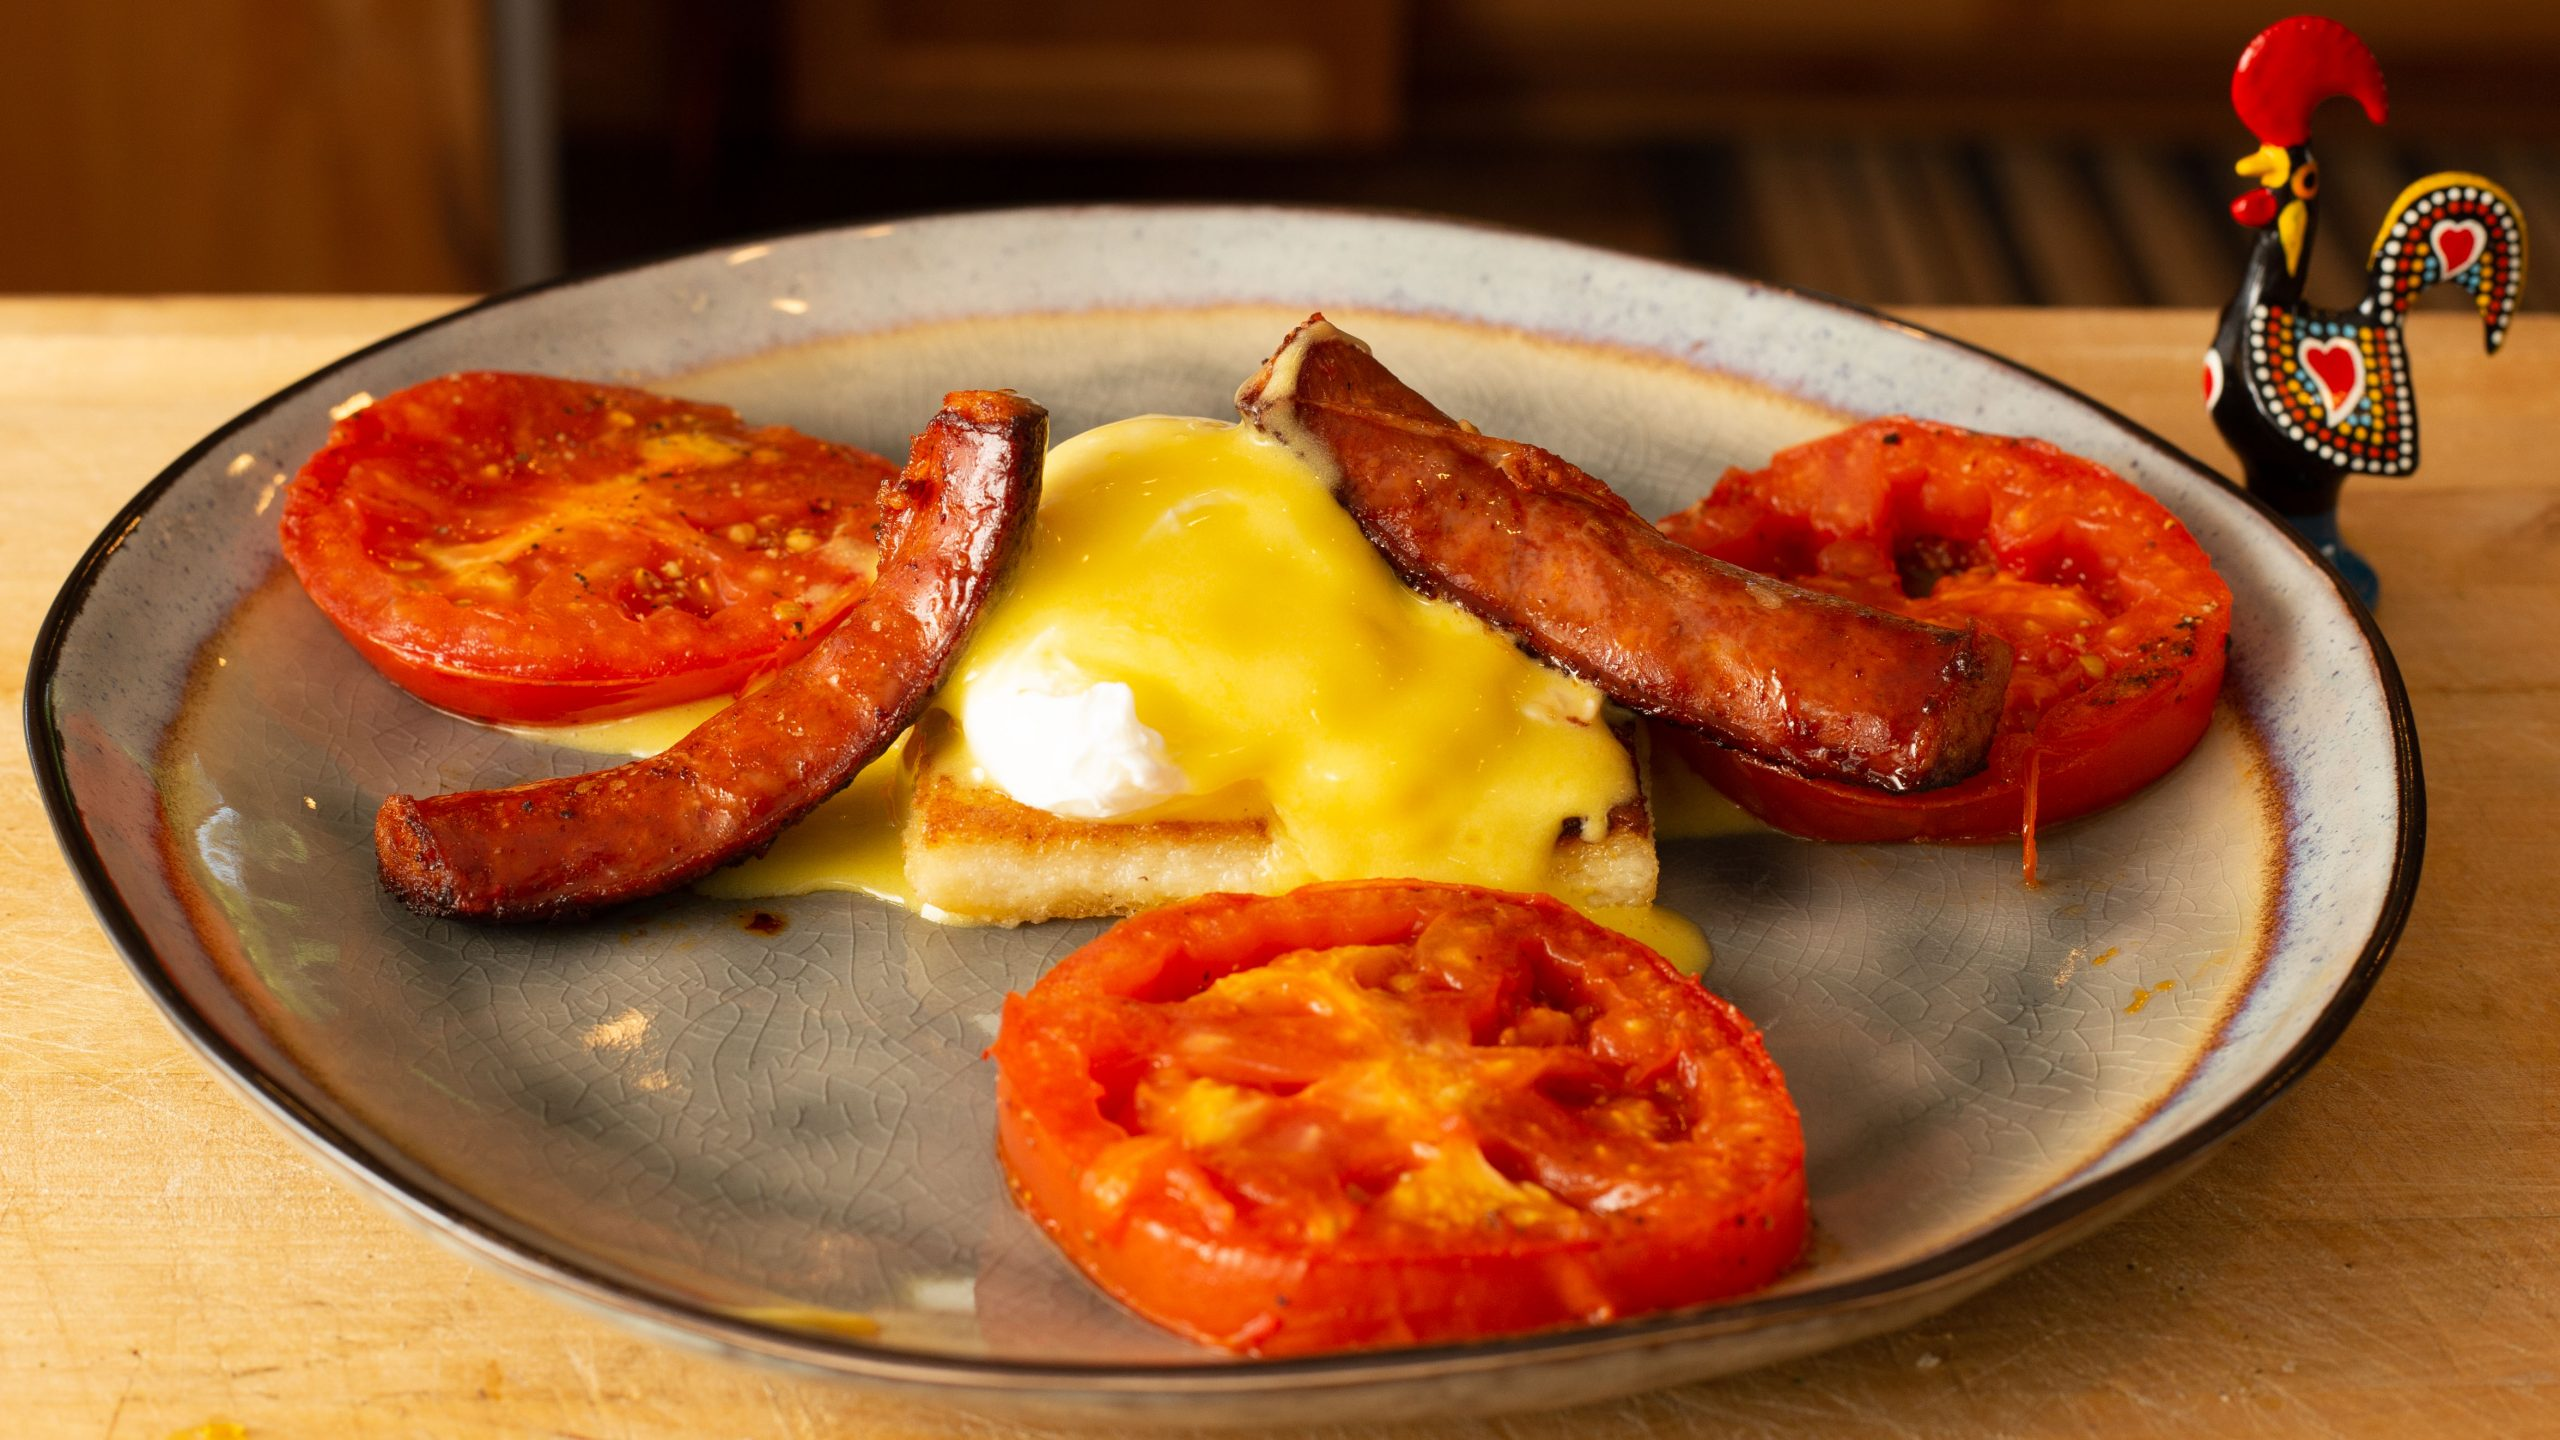 Portuguese Style Eggs Benedict with milho frito, poached eggs, tomato and linguica sausage